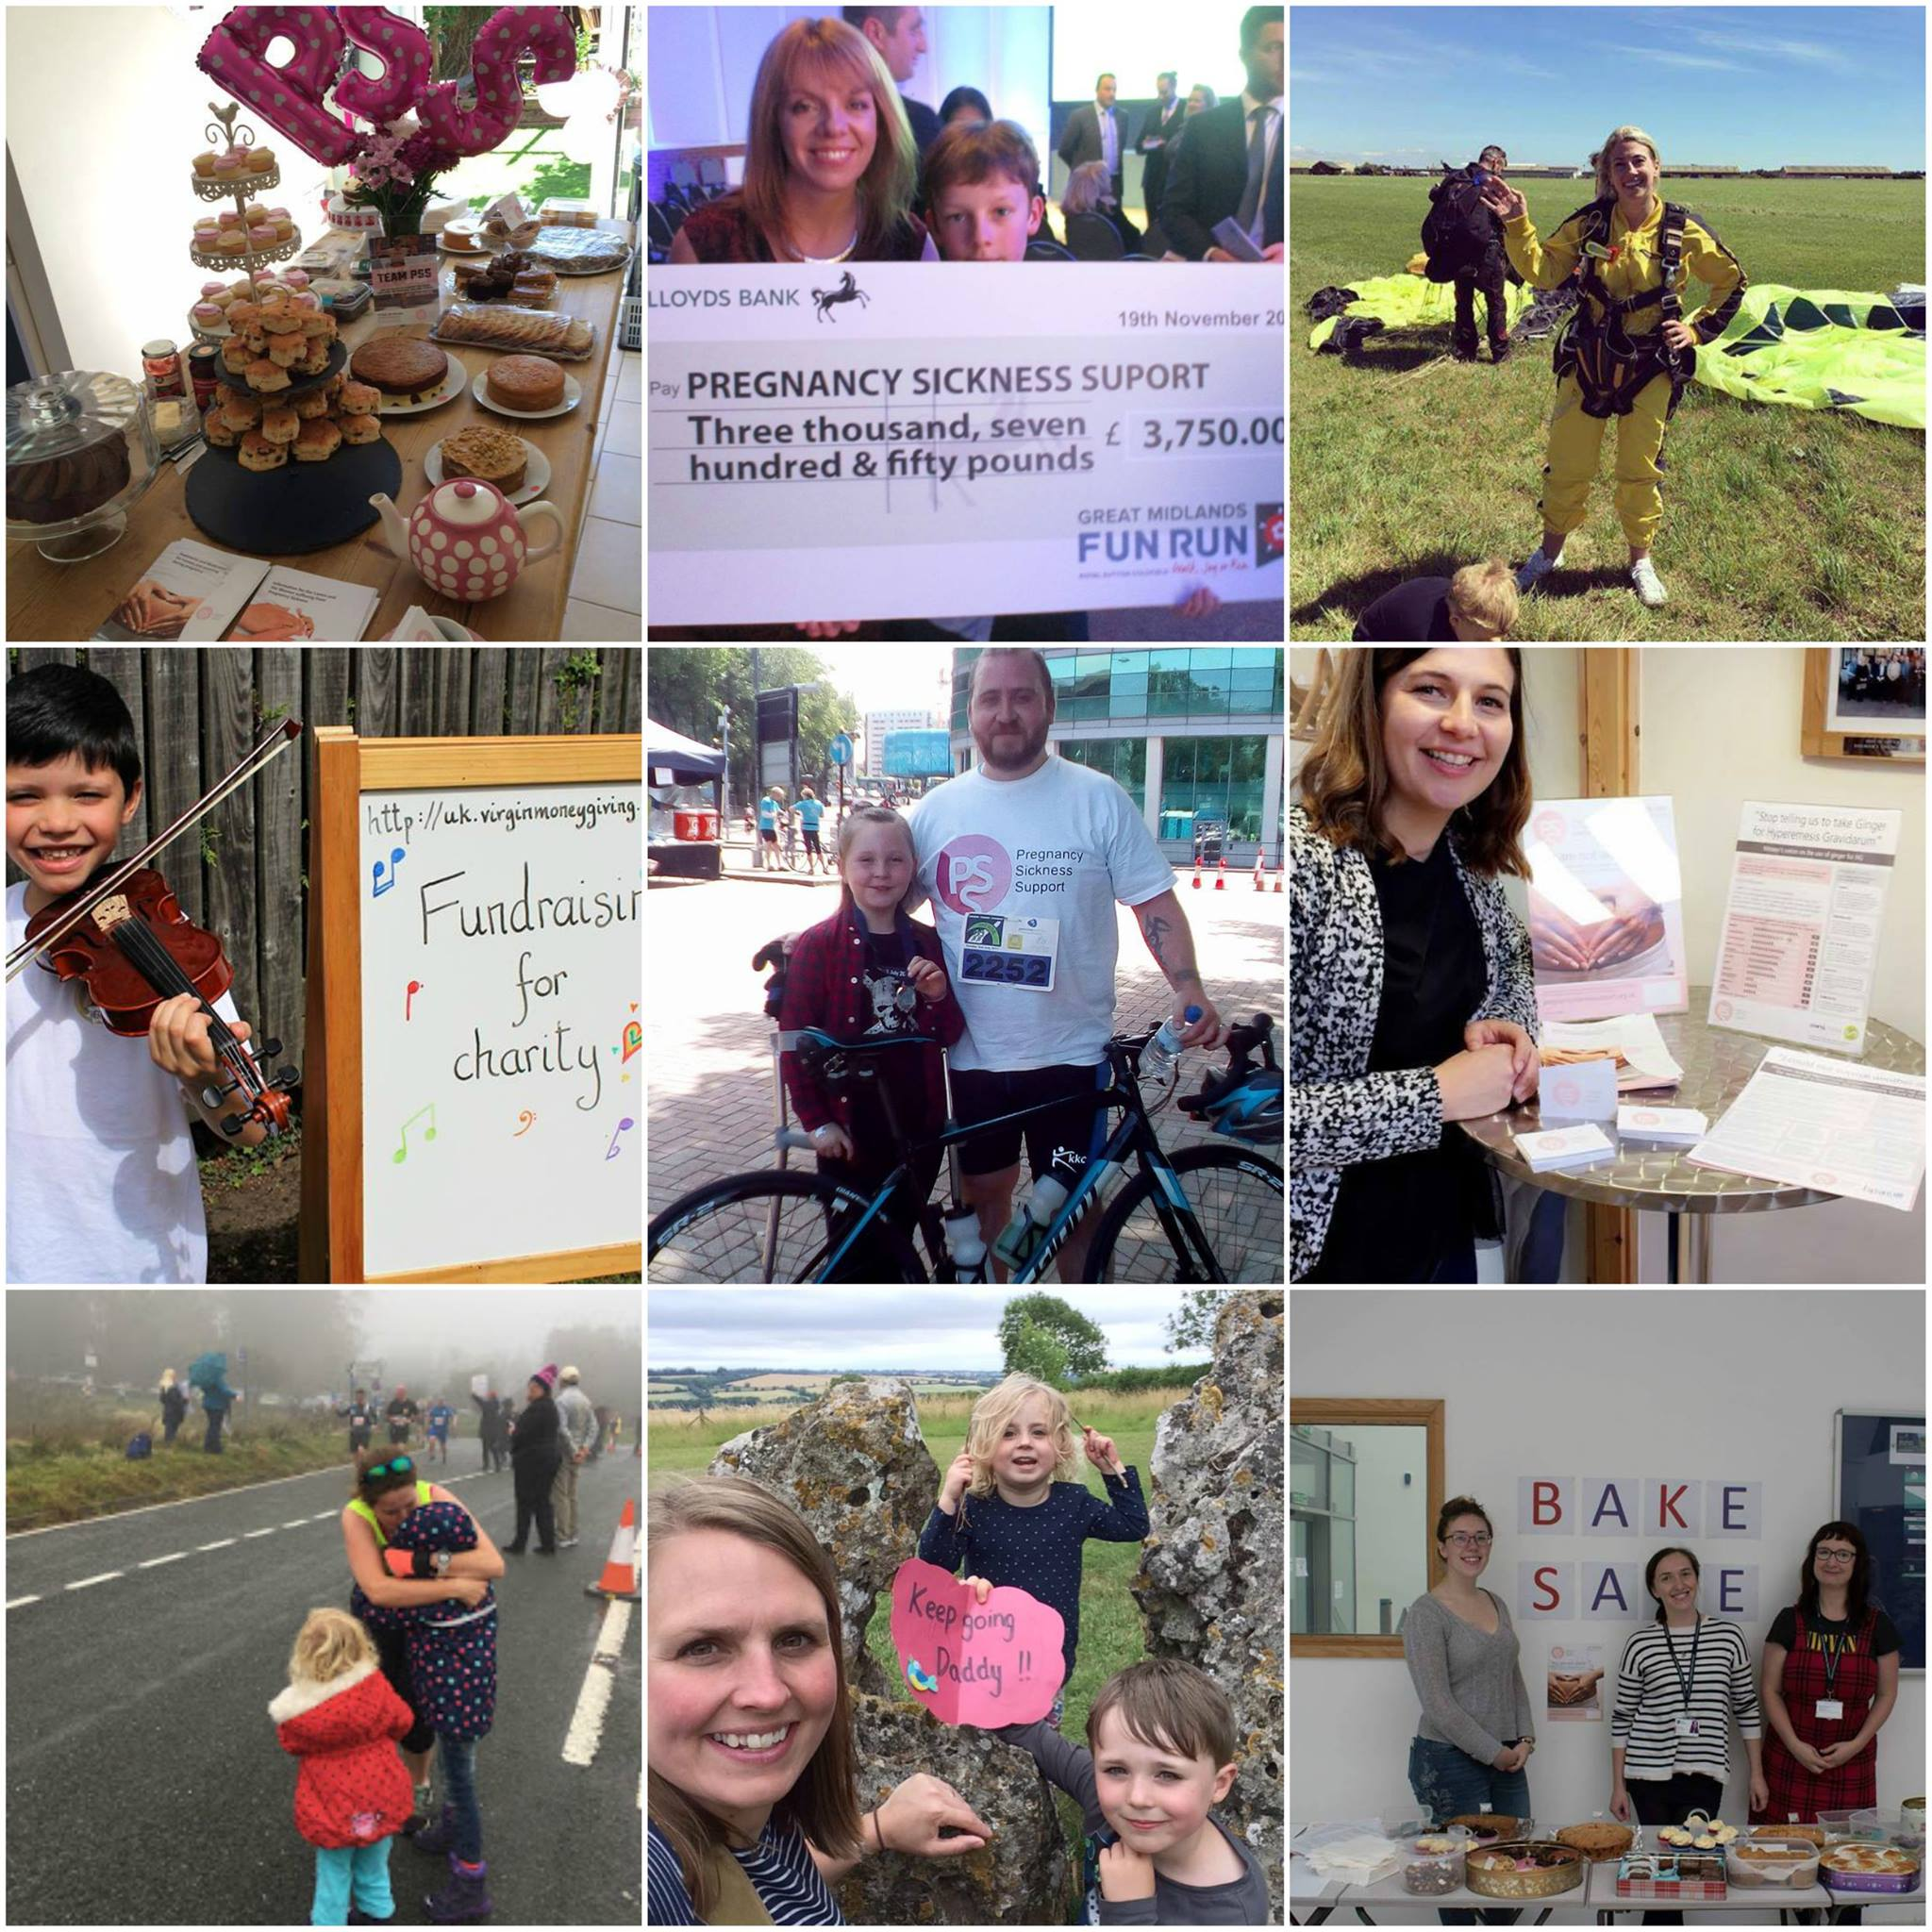 A photo montage of people fundraising for PSS